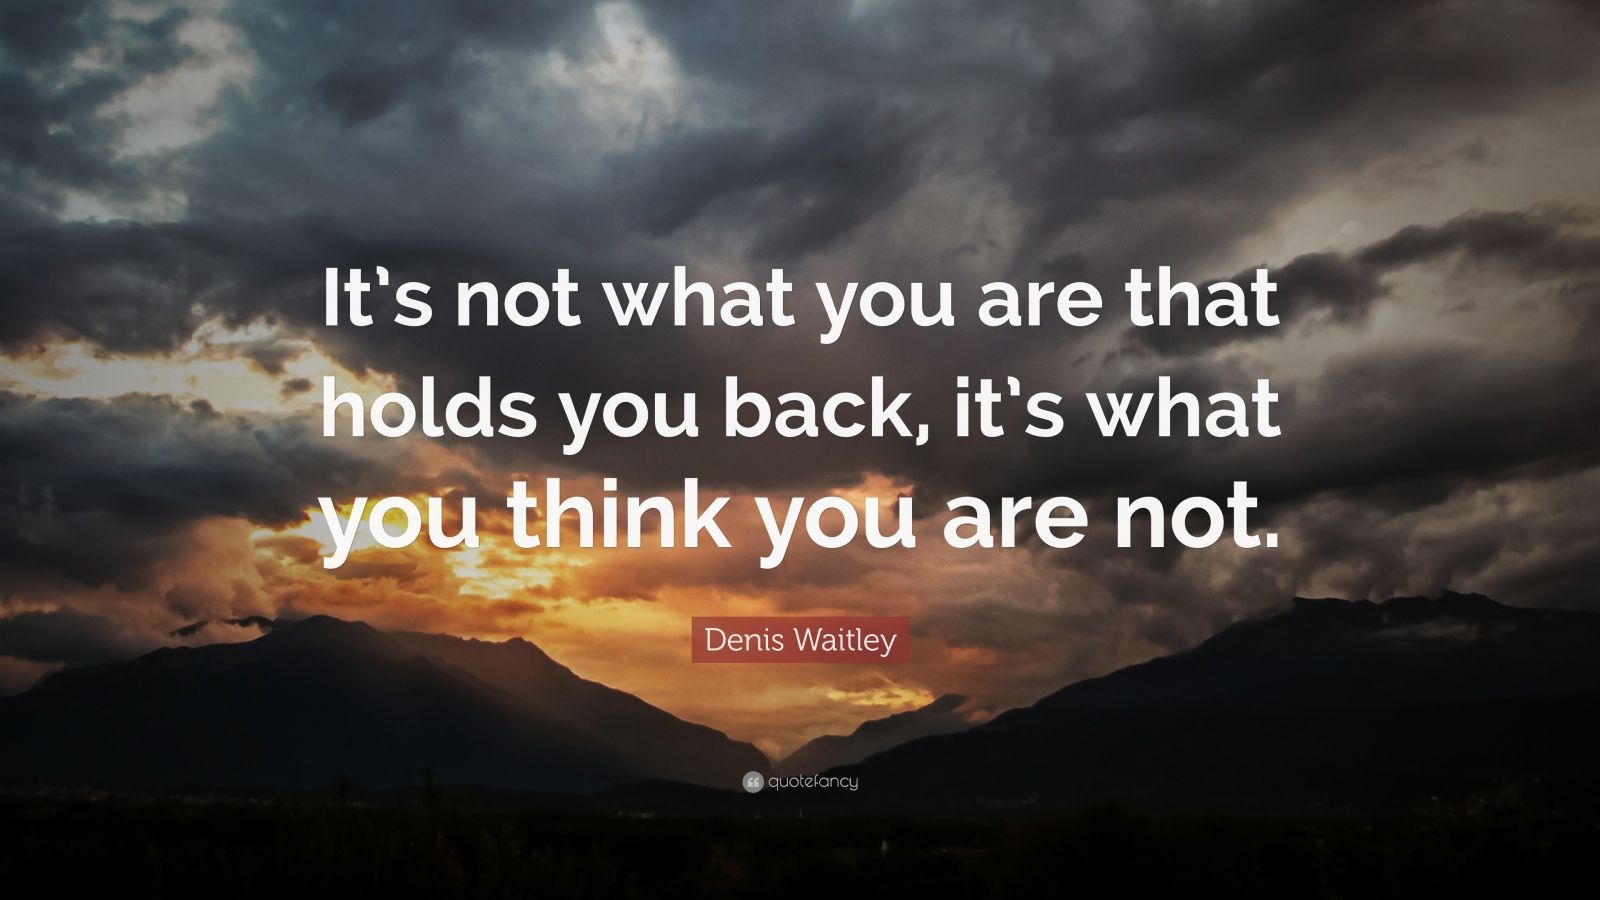 """Denis Waitley Quote: """"It's not what you are that holds you back, it's what you think you are not."""""""